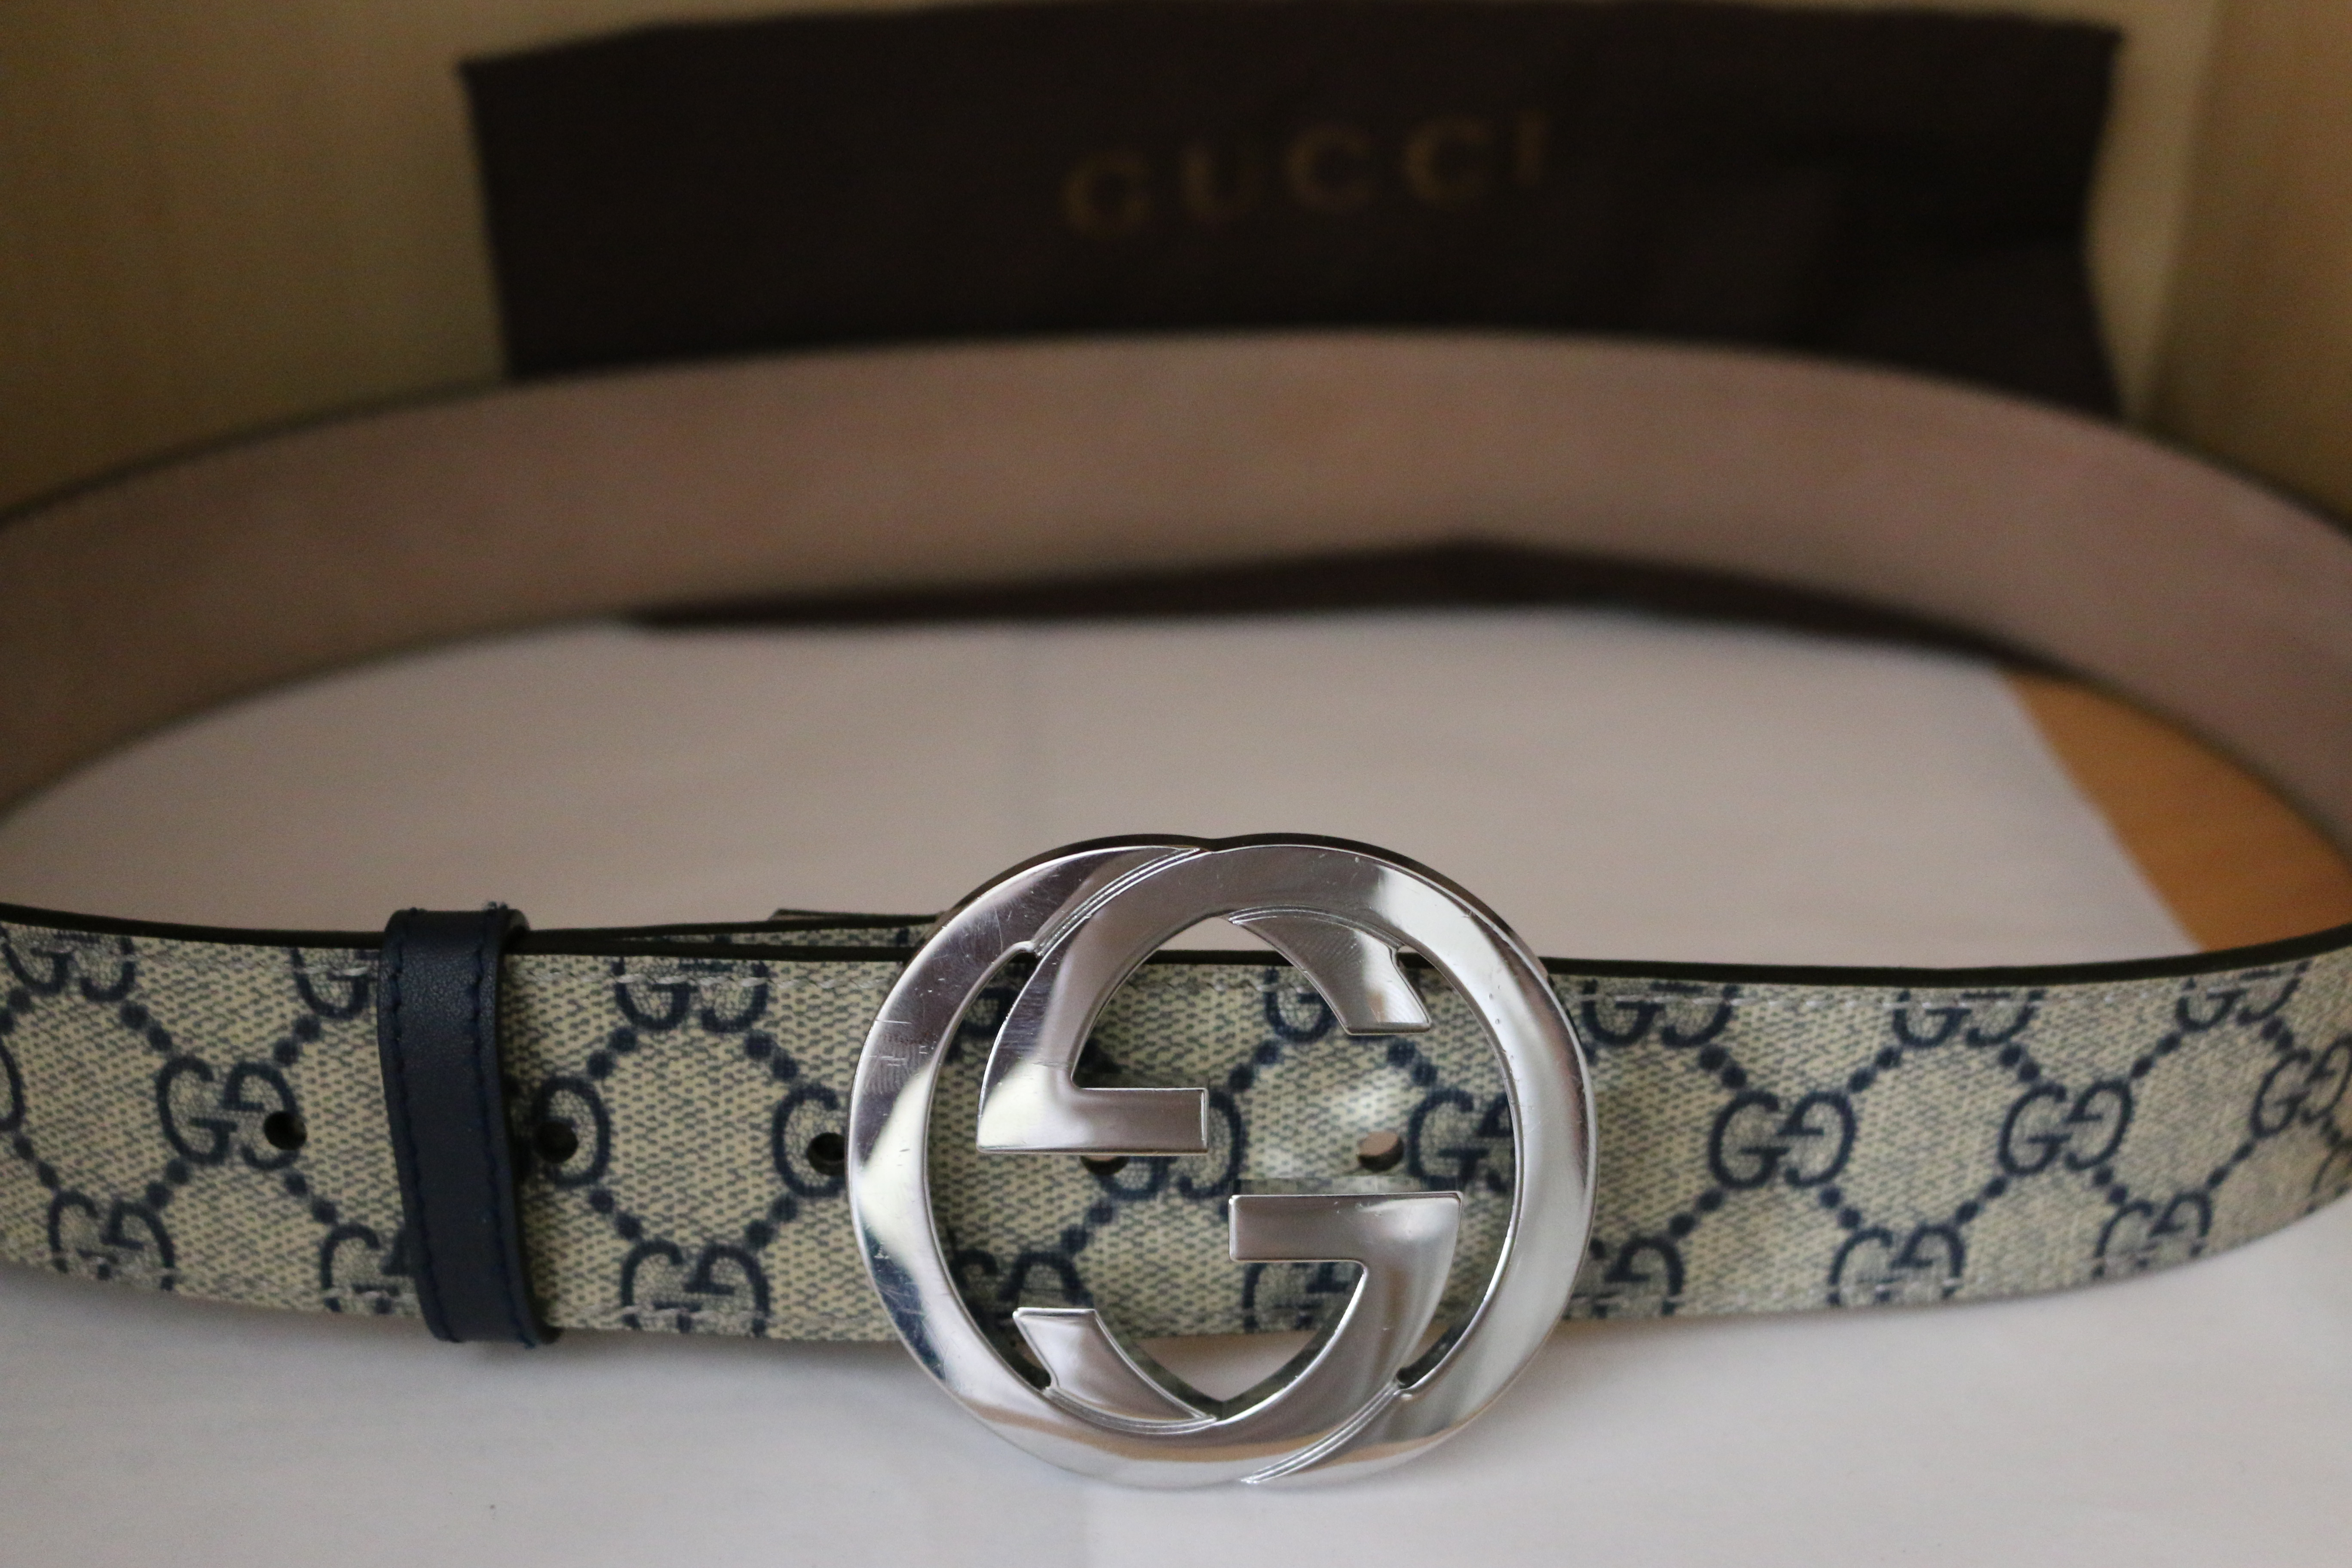 55ebc5a64 Gucci Men's Gg Supreme Belt With G Buckle Navy Blue And Beige | Grailed